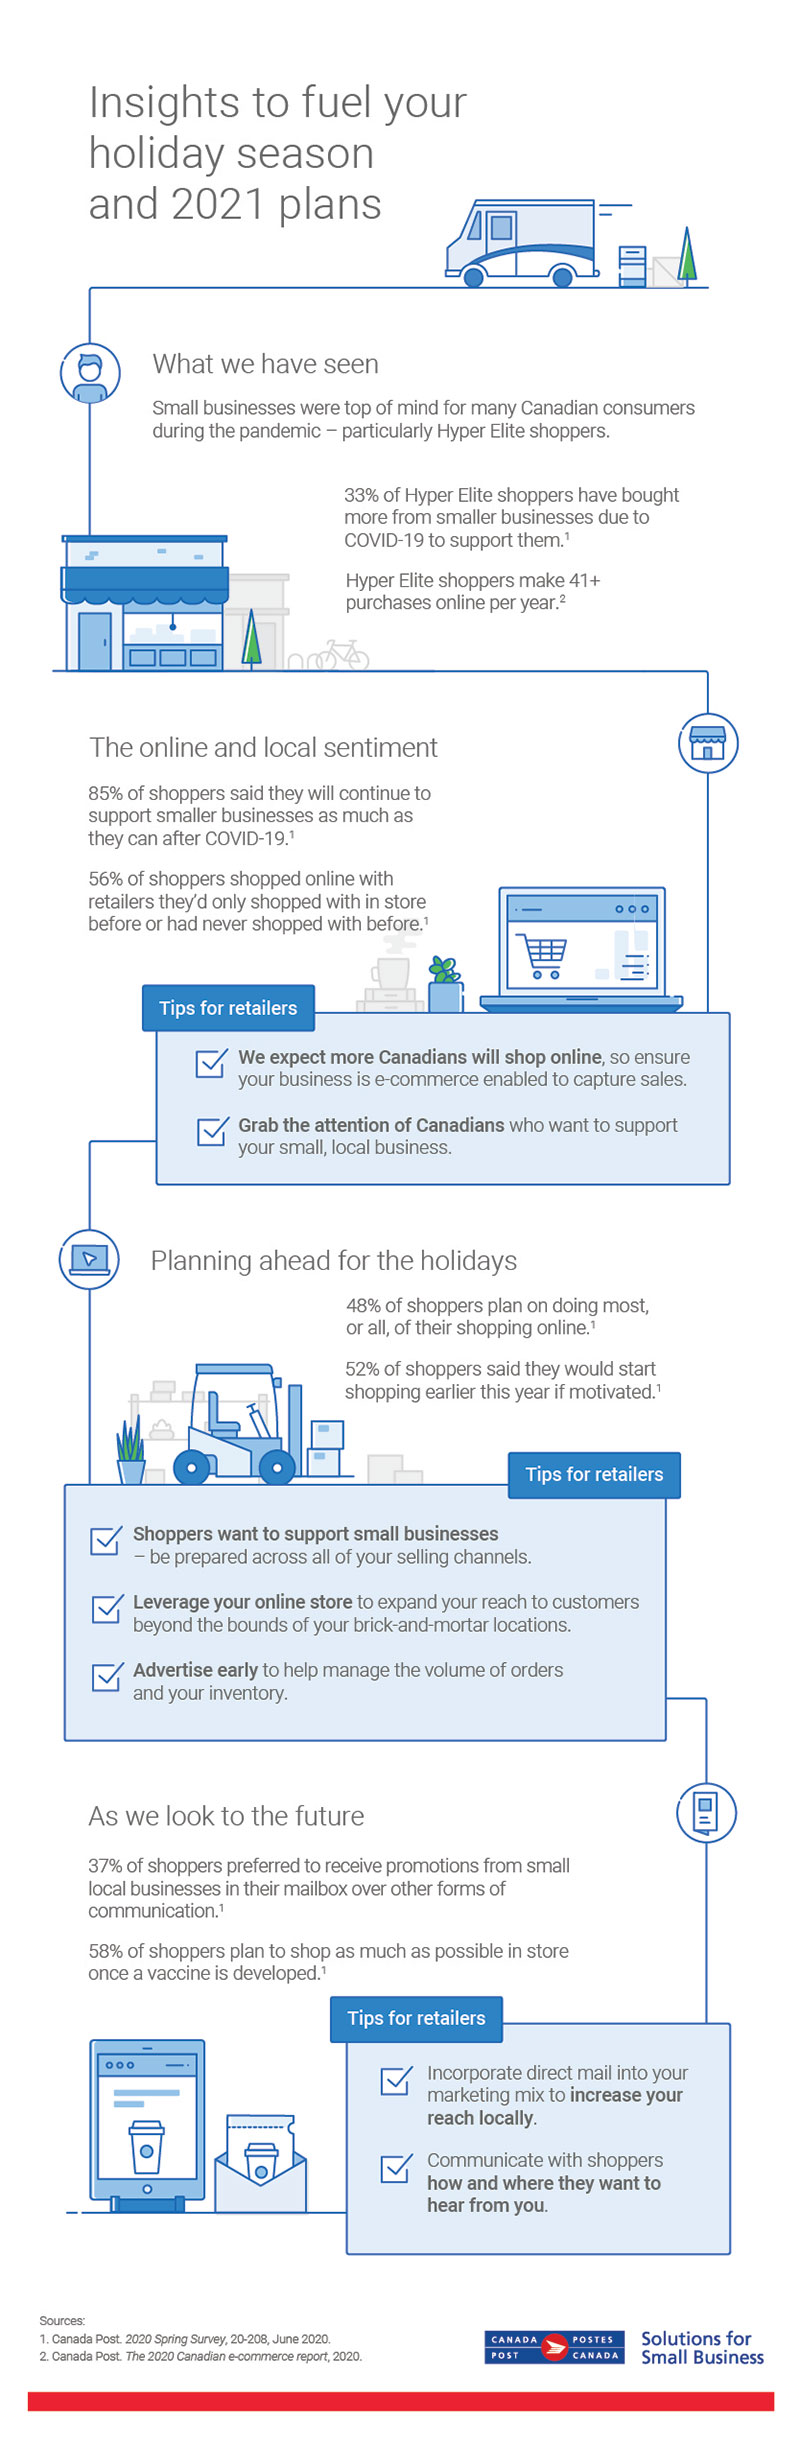 An infographic outlining key shopper insights from Canada Post's e-commerce research that will help businesses market themselves effectively for the 2020 holiday season and beyond. Click the image to view an accessible PDF.